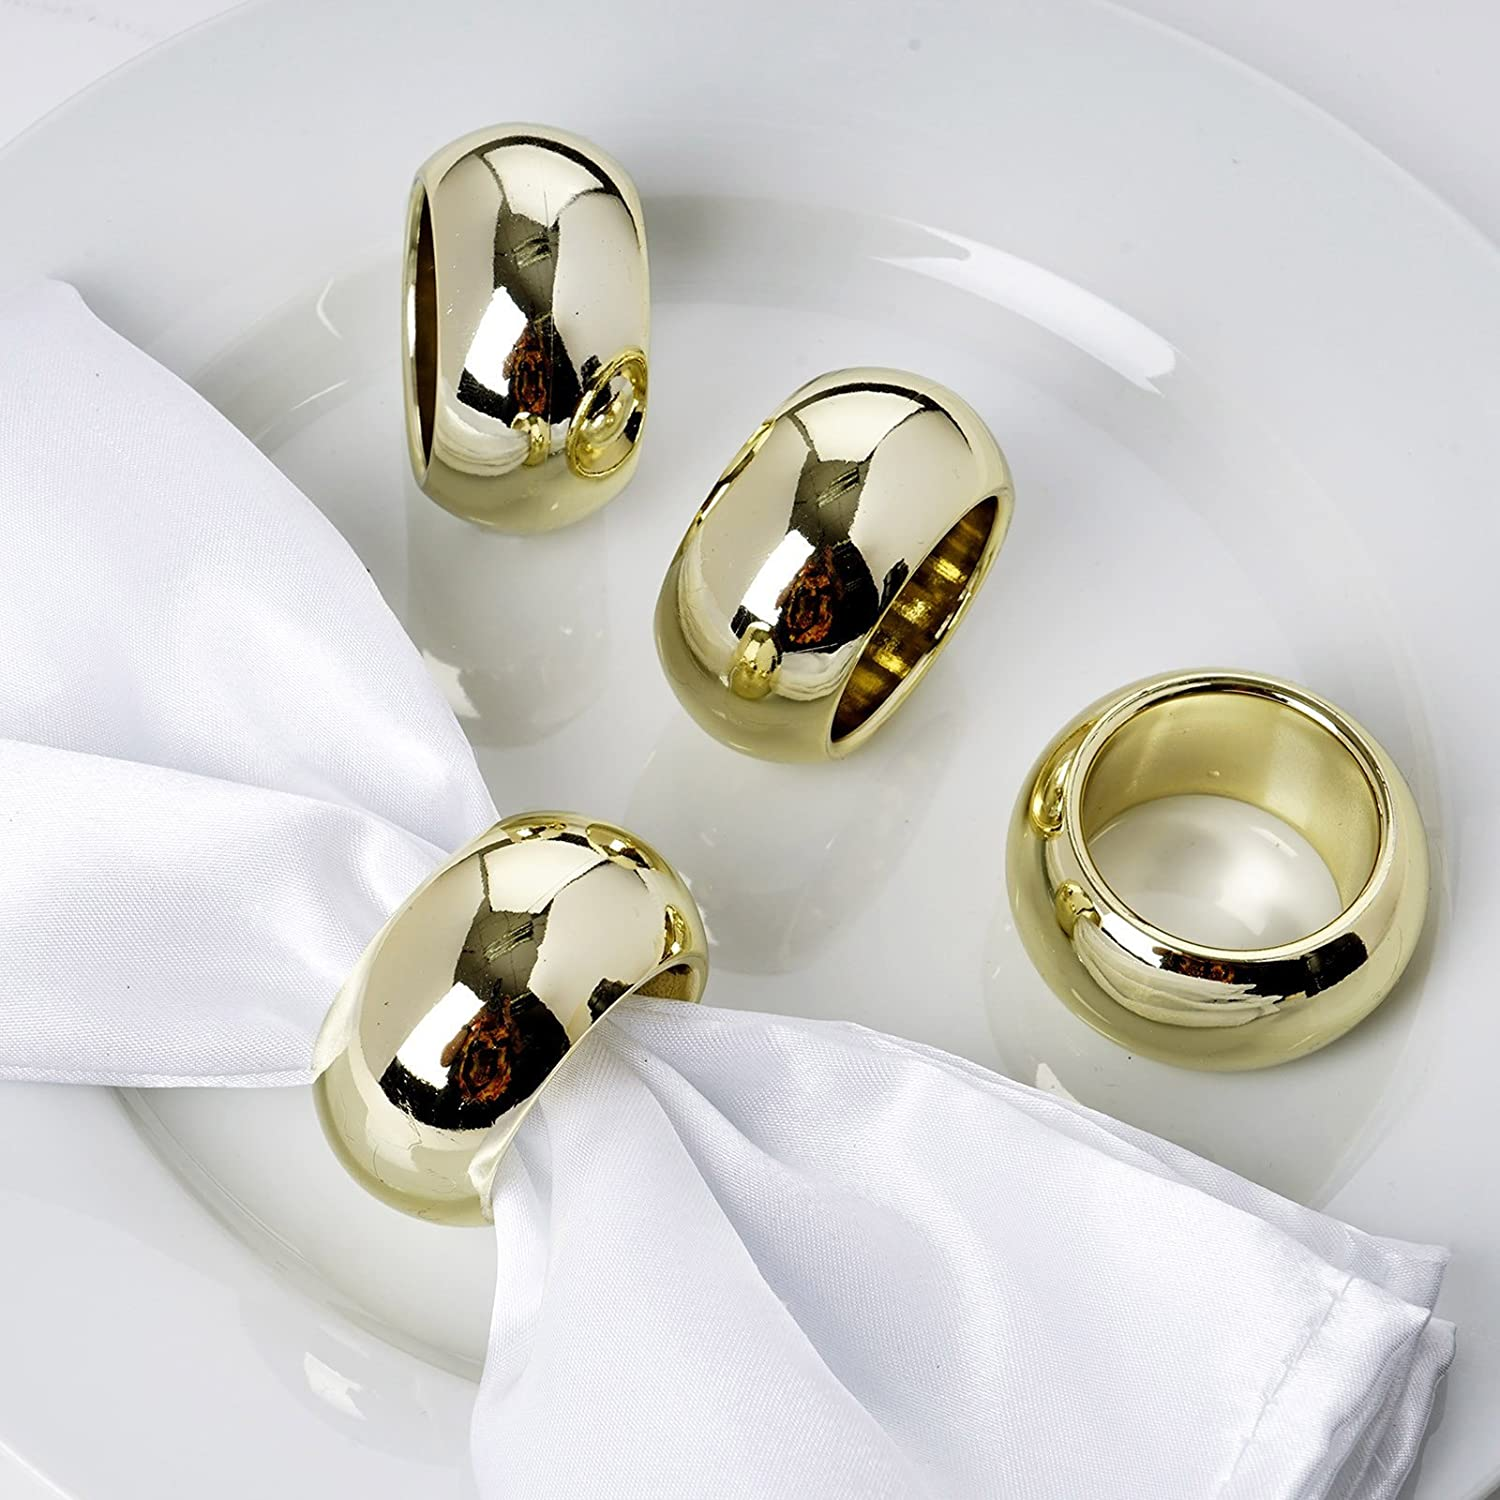 Efavormart 4 PCS Wholesale Black Acrylic Napkin Rings for Place Settings Wedding Receptions Dinner or Holiday Parties Tableware